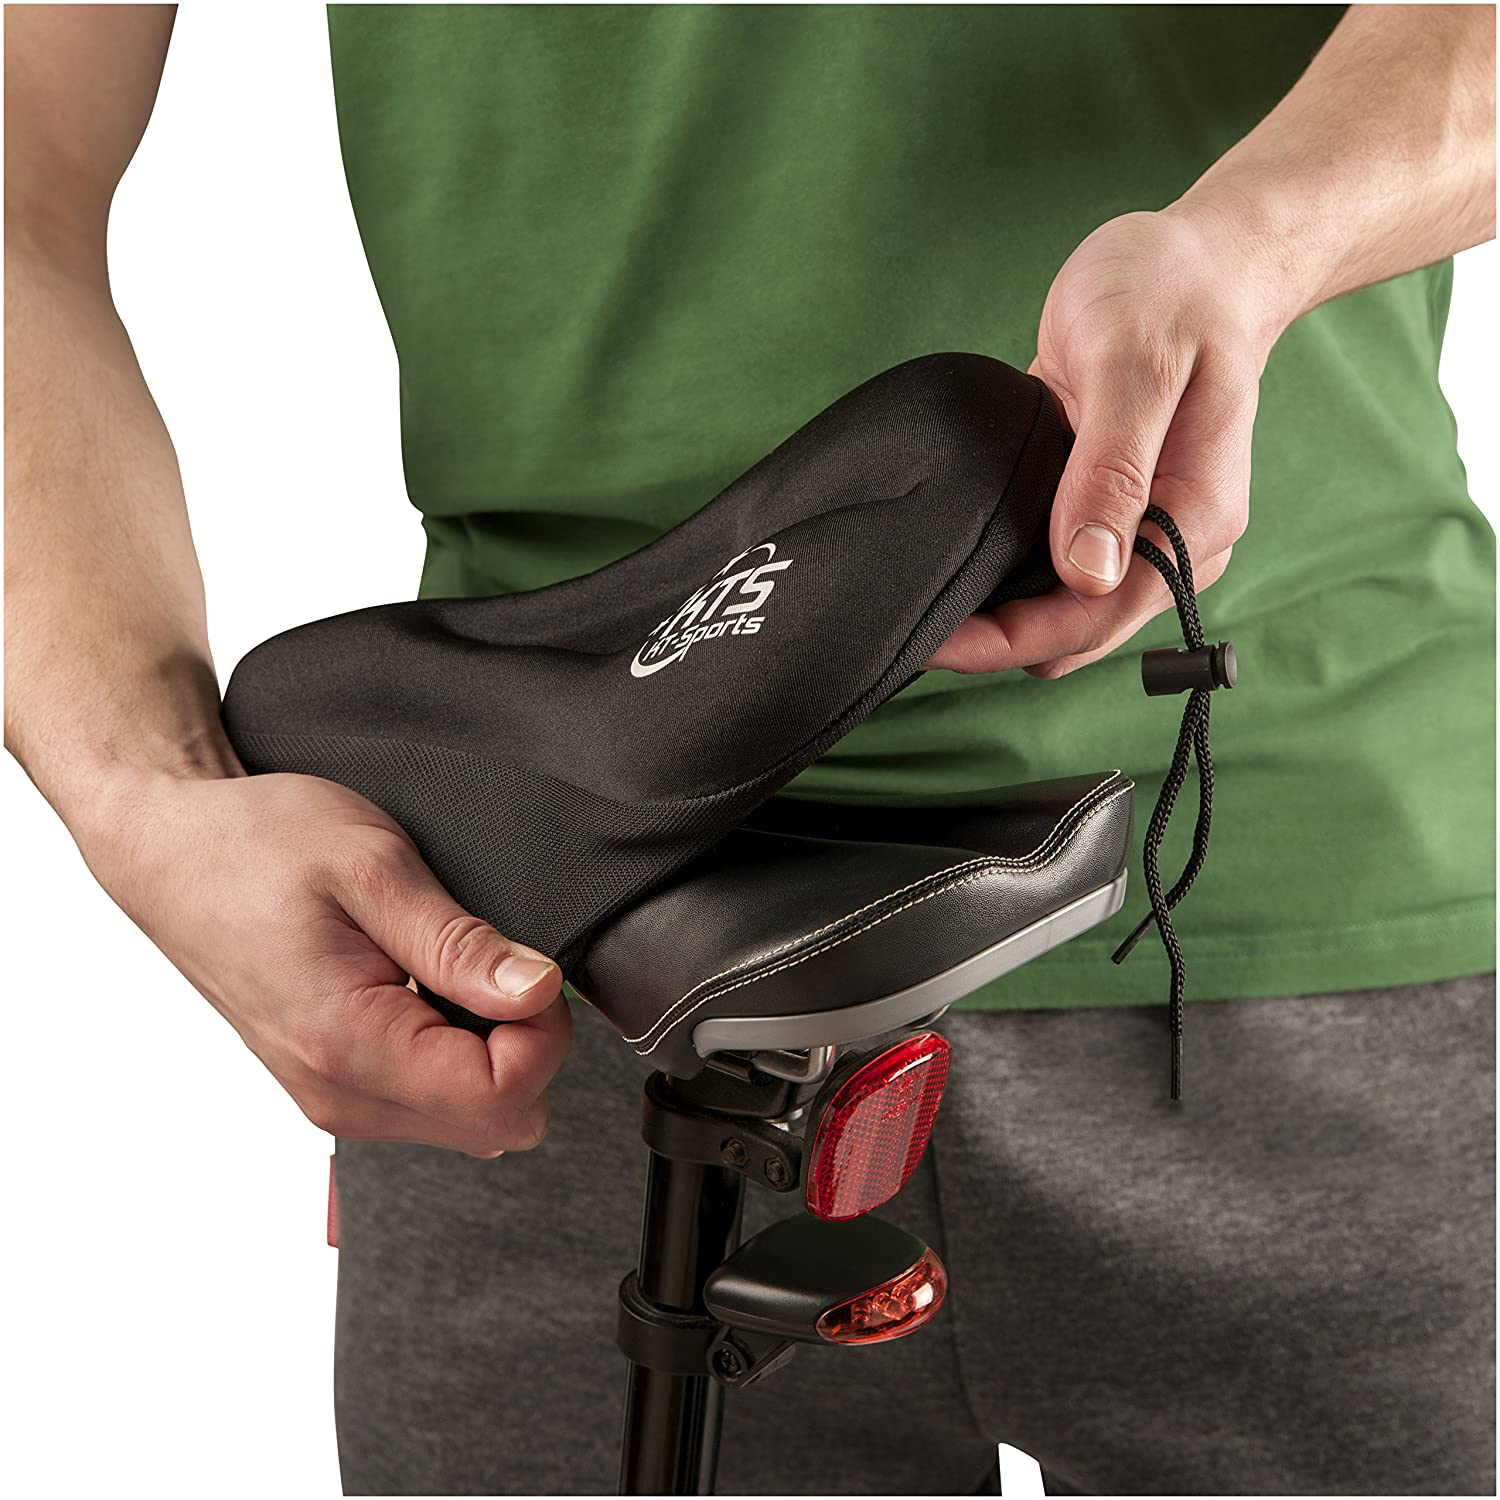 cyclists comfortable mountain seat gifts ergonomic for saddle road bike most comforter pin